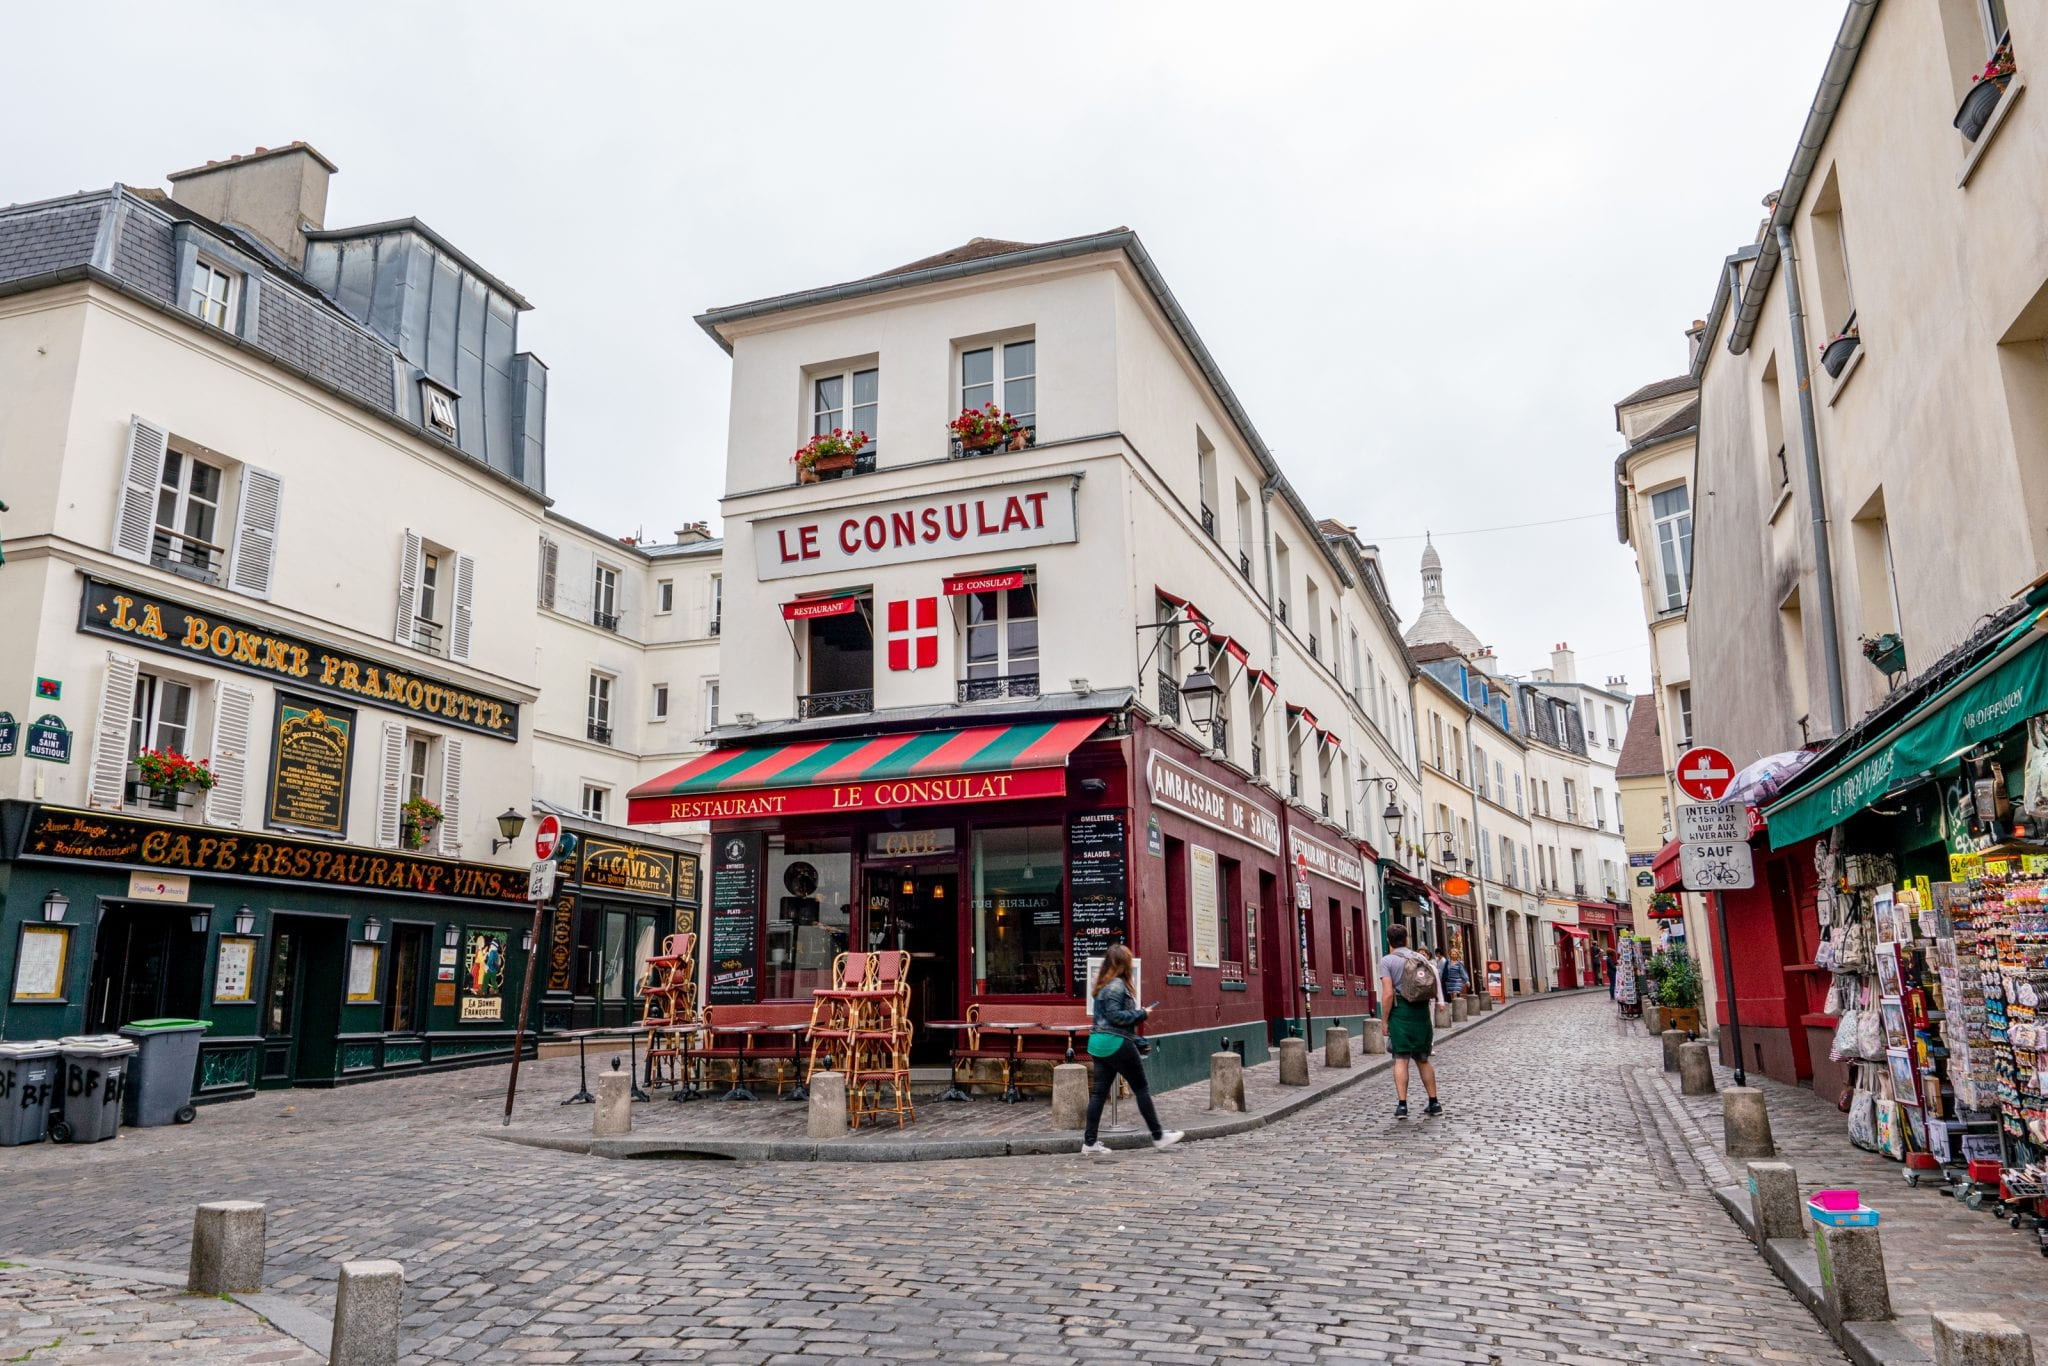 Le Consulat Cafe in Montmartre with no people in front of it, one of the most instagrammable places in Paris